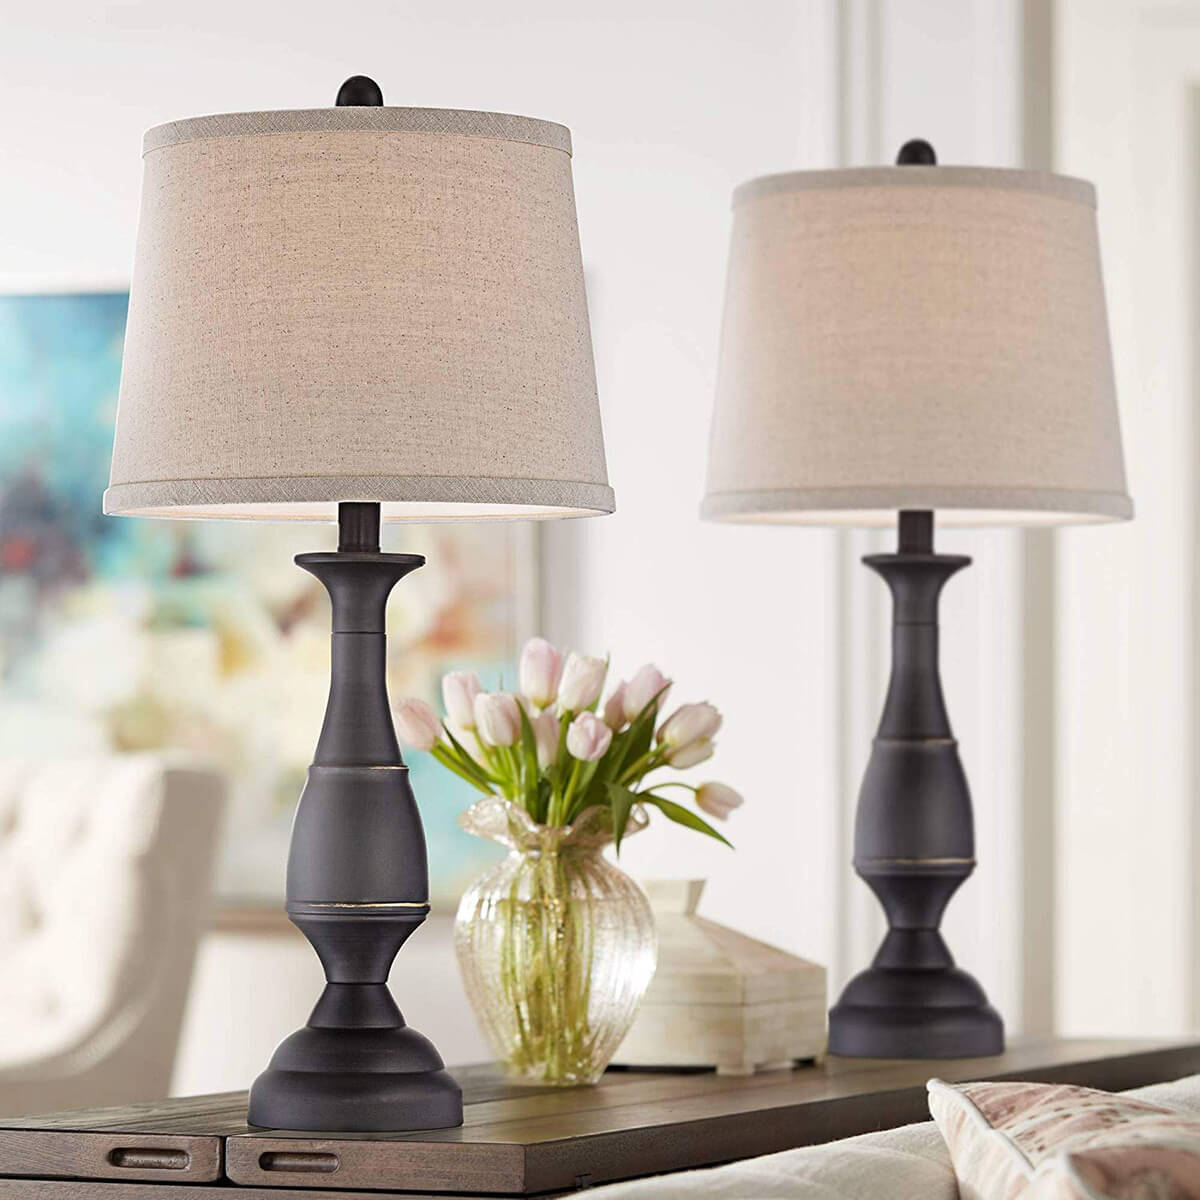 Choose Twin Table Lamps for Twice the Elegance